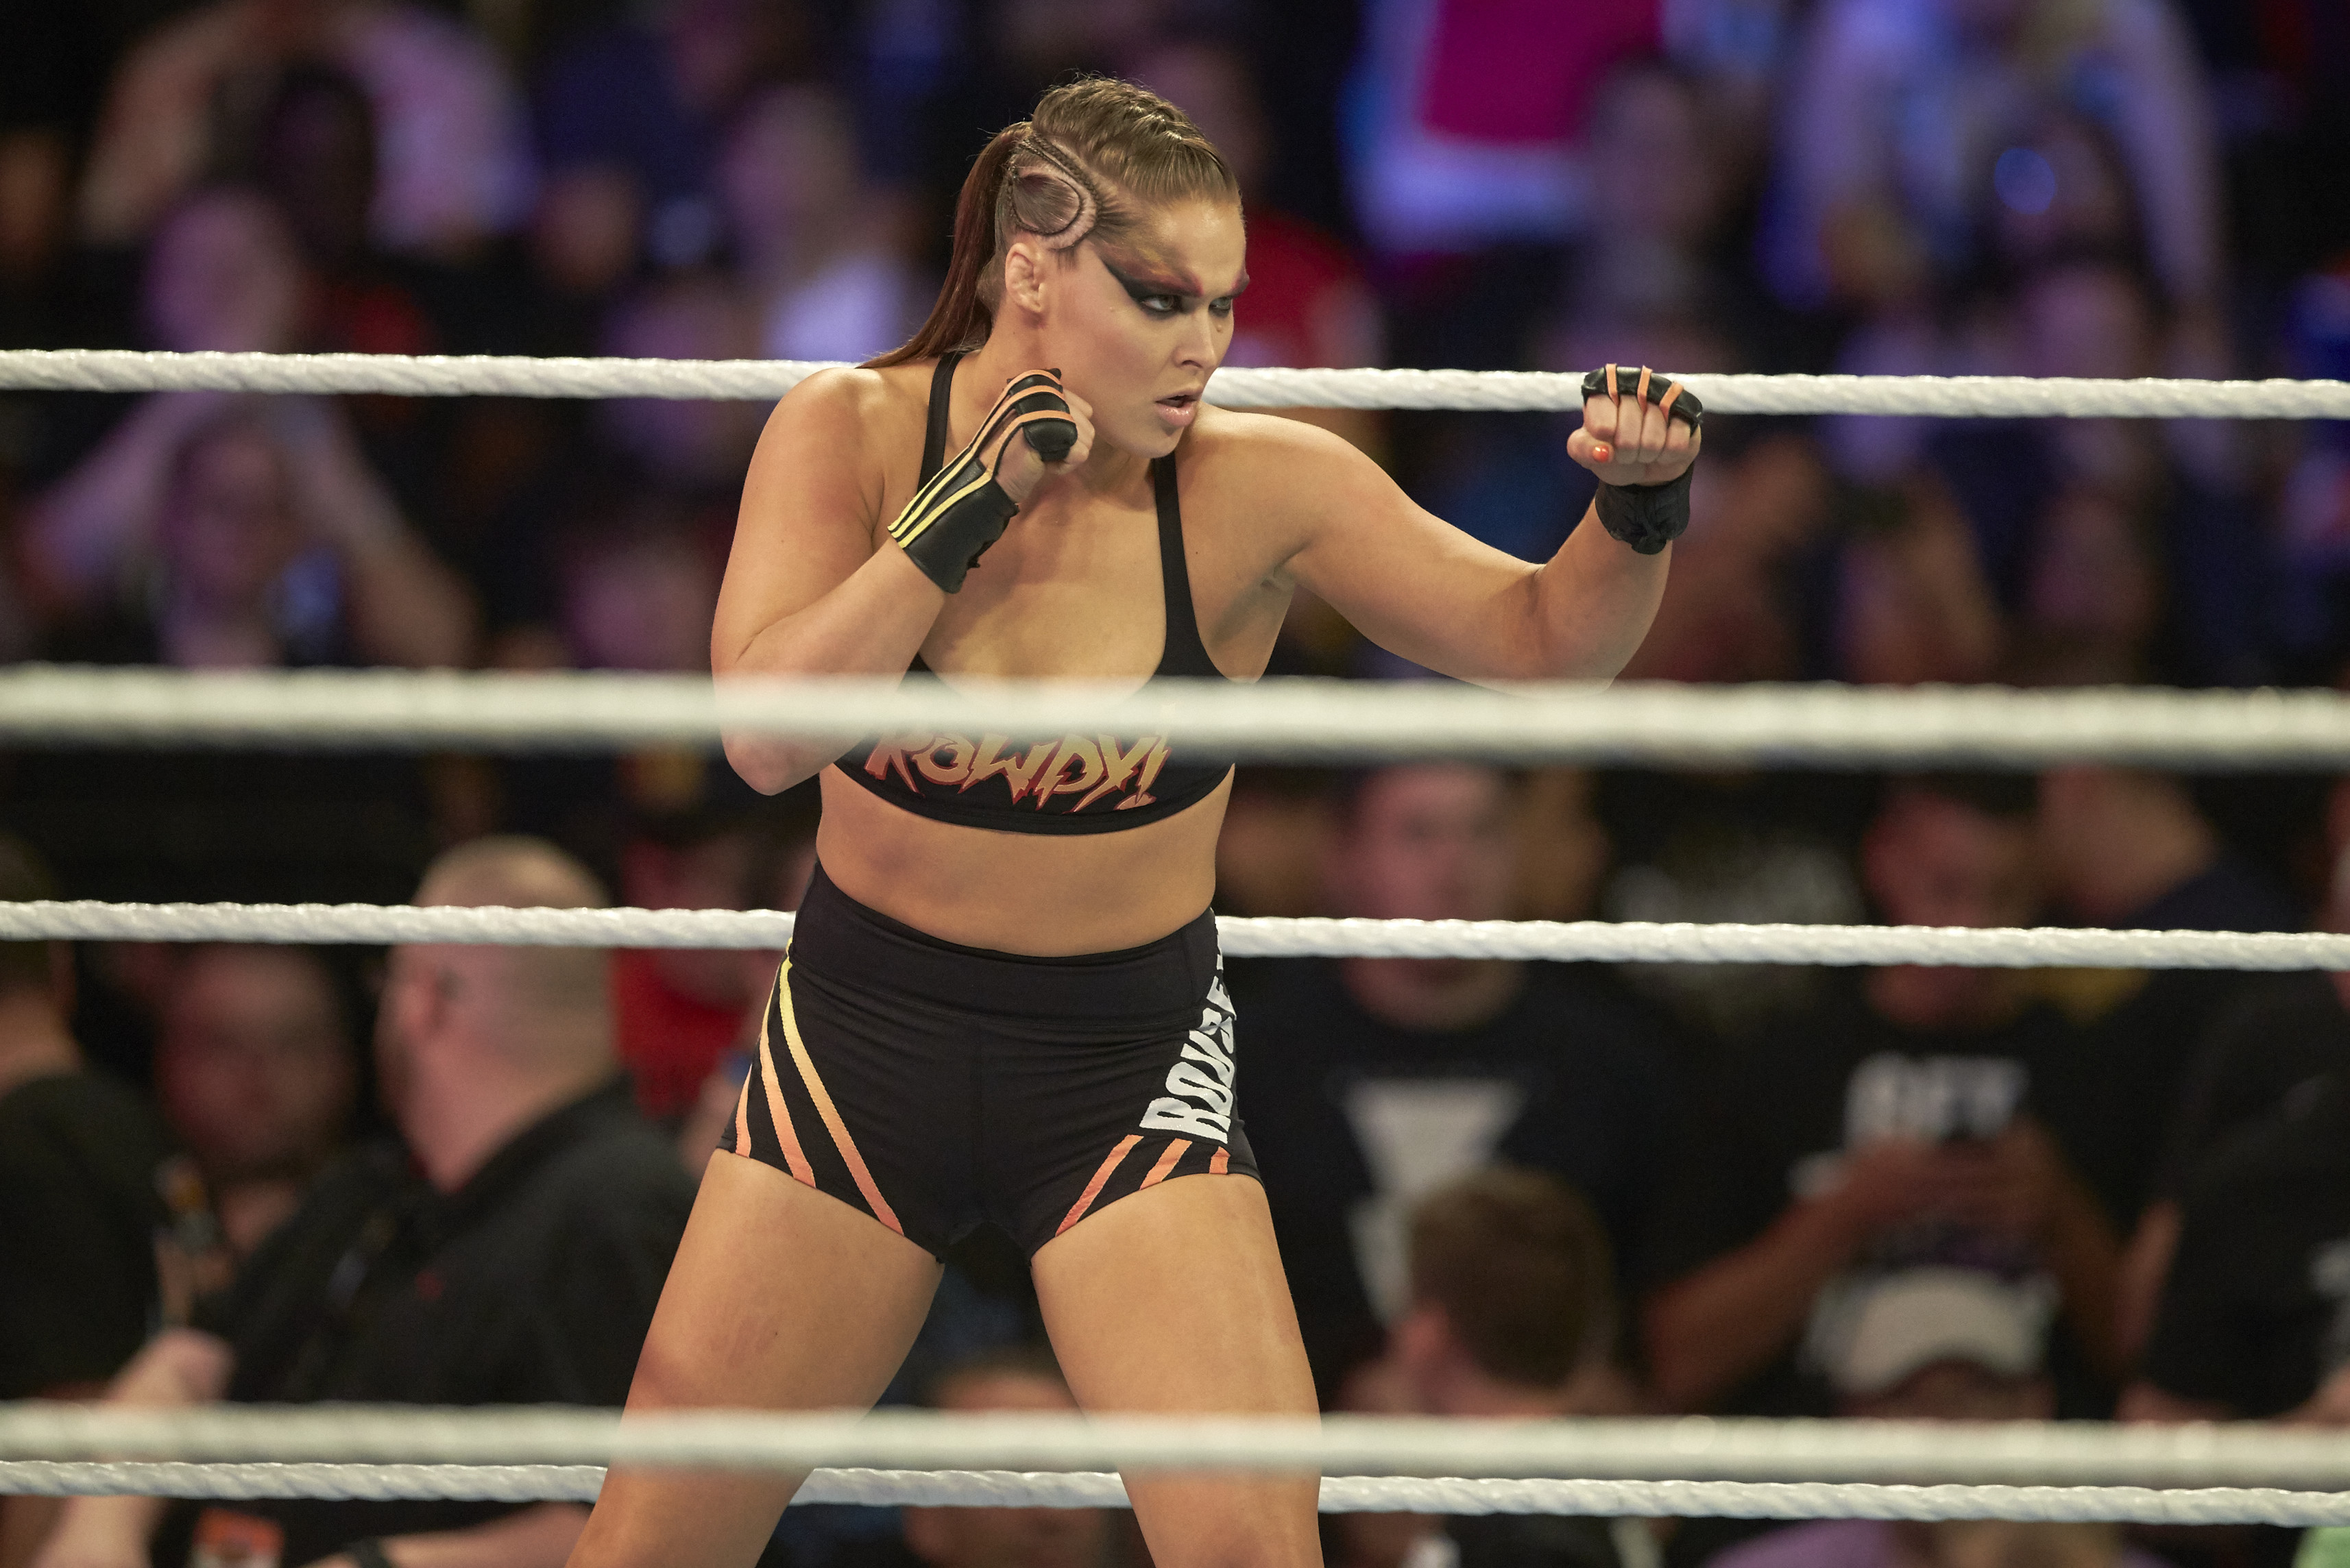 Photos: WWE Star Ronda Rousey Celebrates Birth Of Her First Child 3